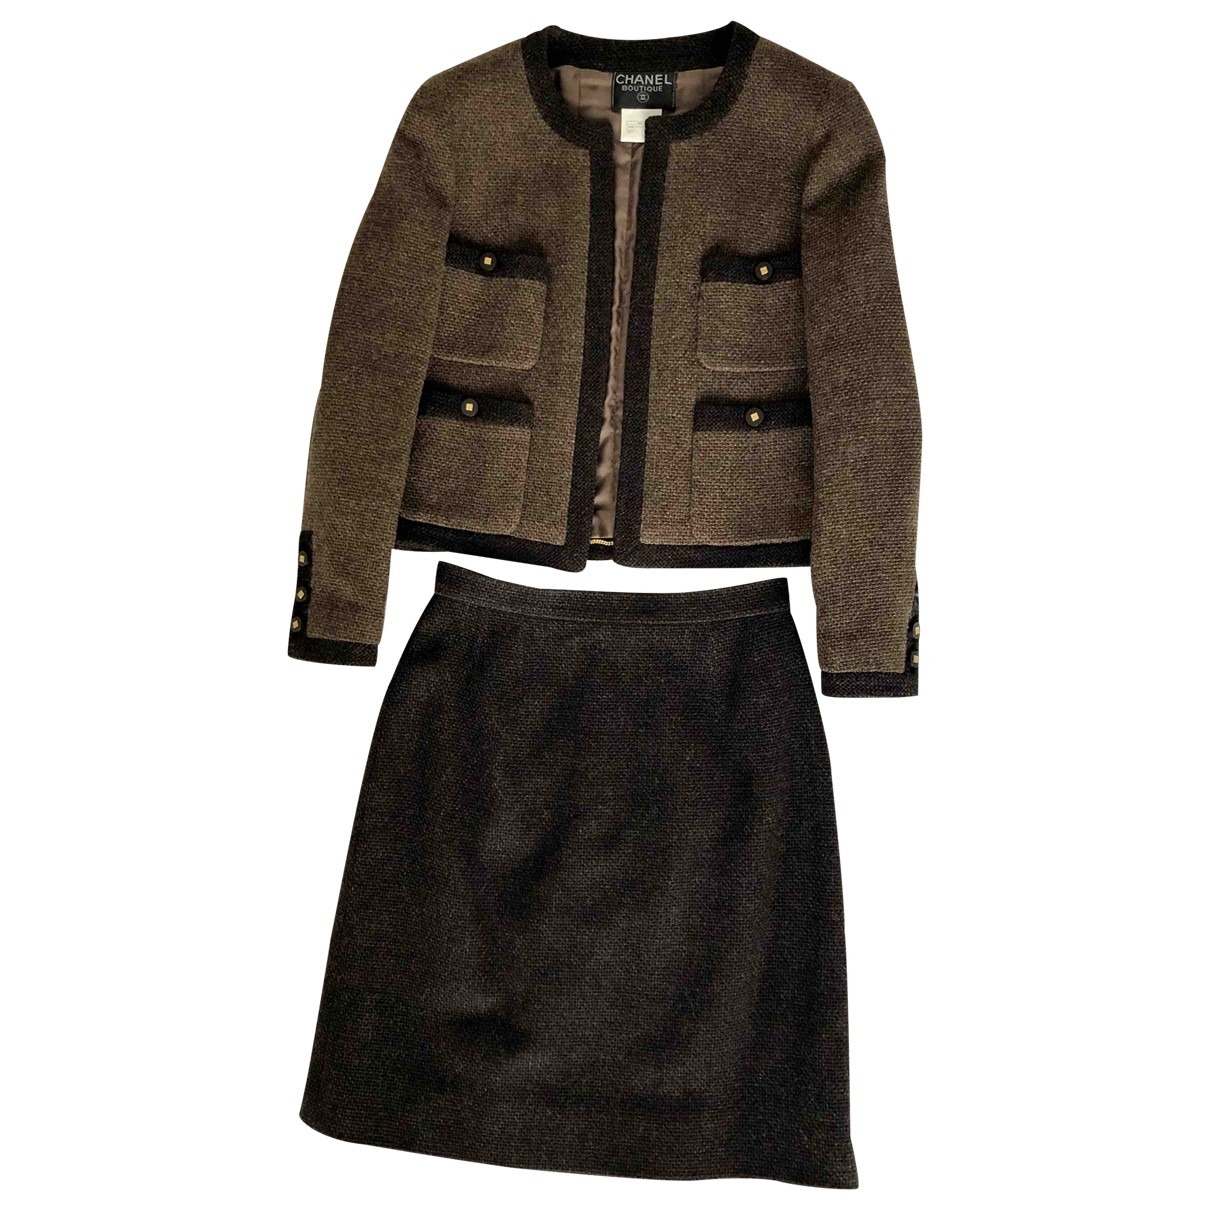 Chanel \N Brown Wool jacket for Women 42 FR